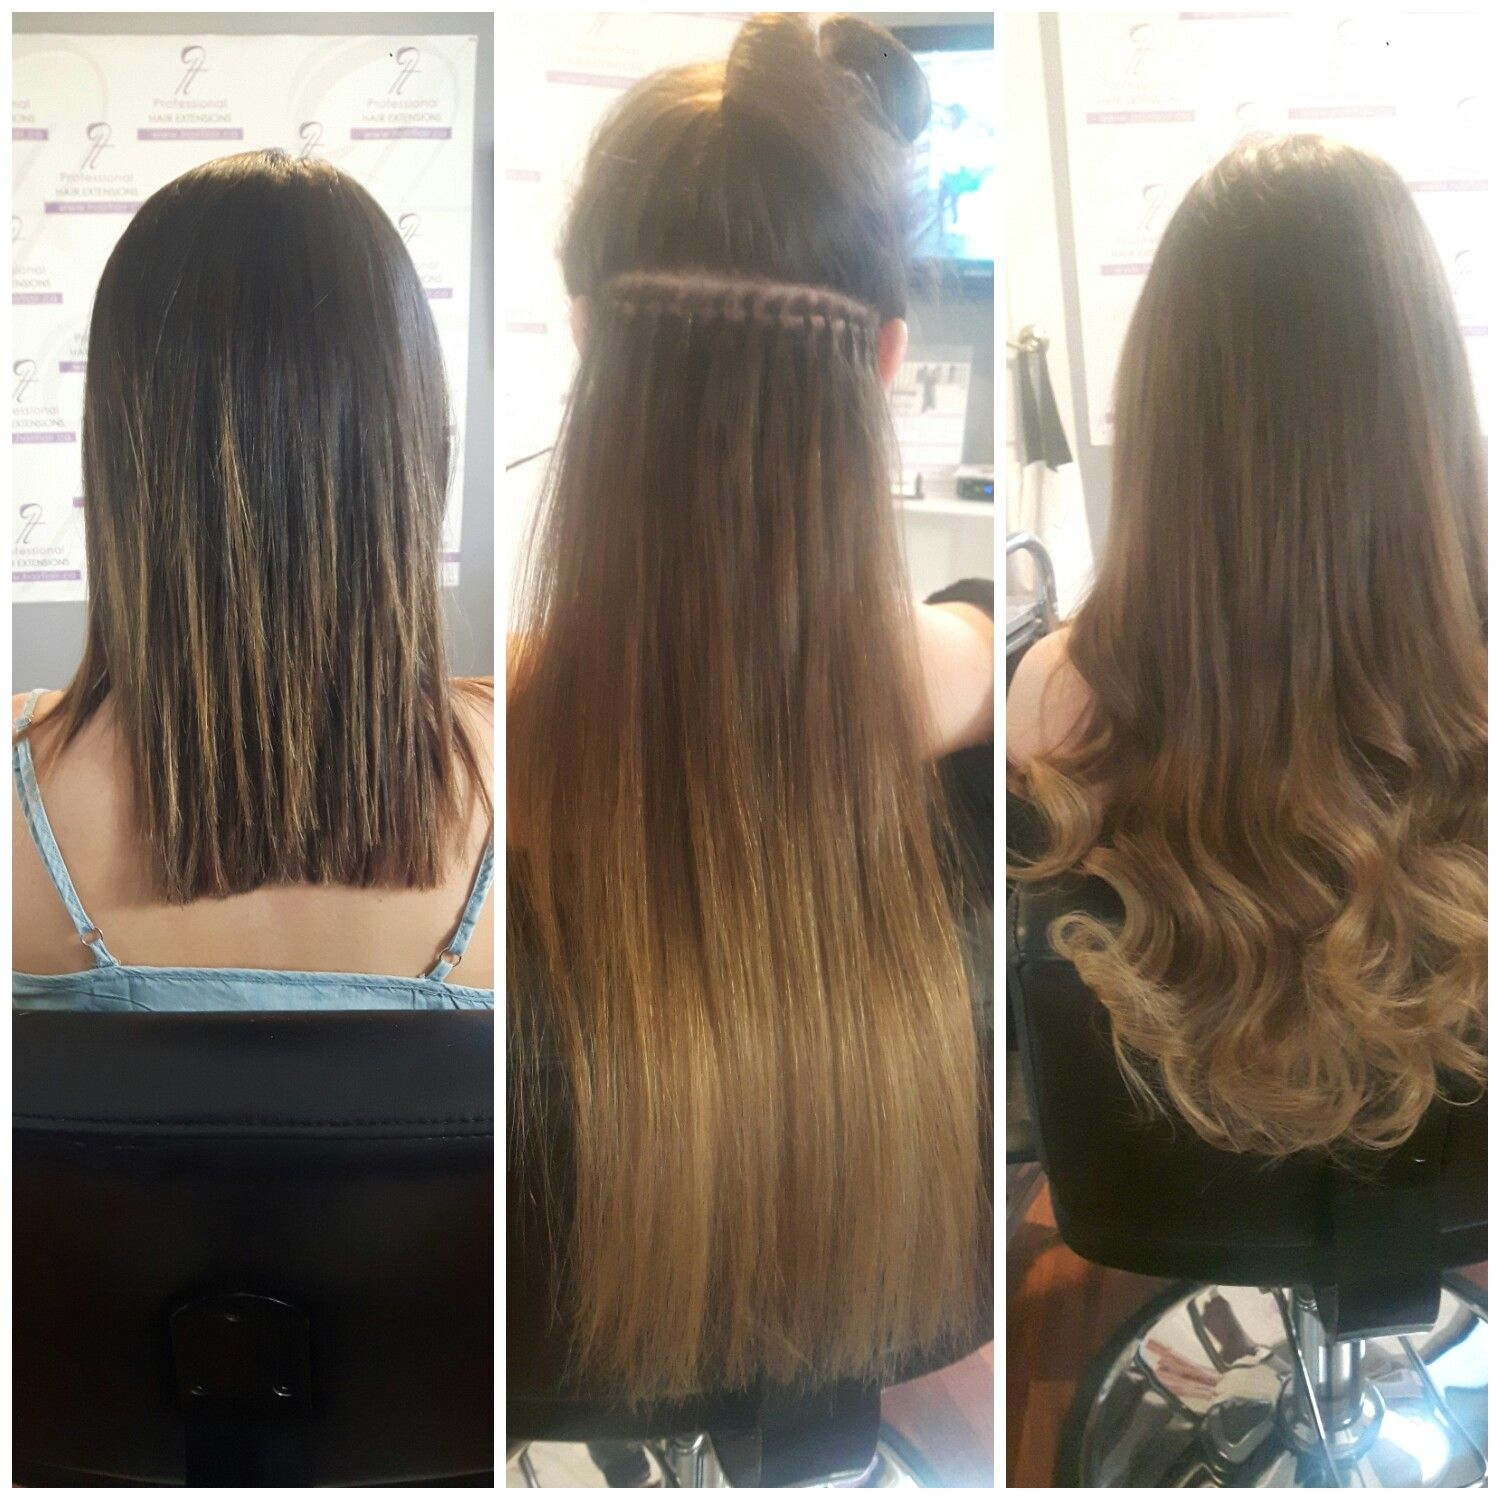 Before And After 26 Inches Of Premium Nano Extensions Expertly